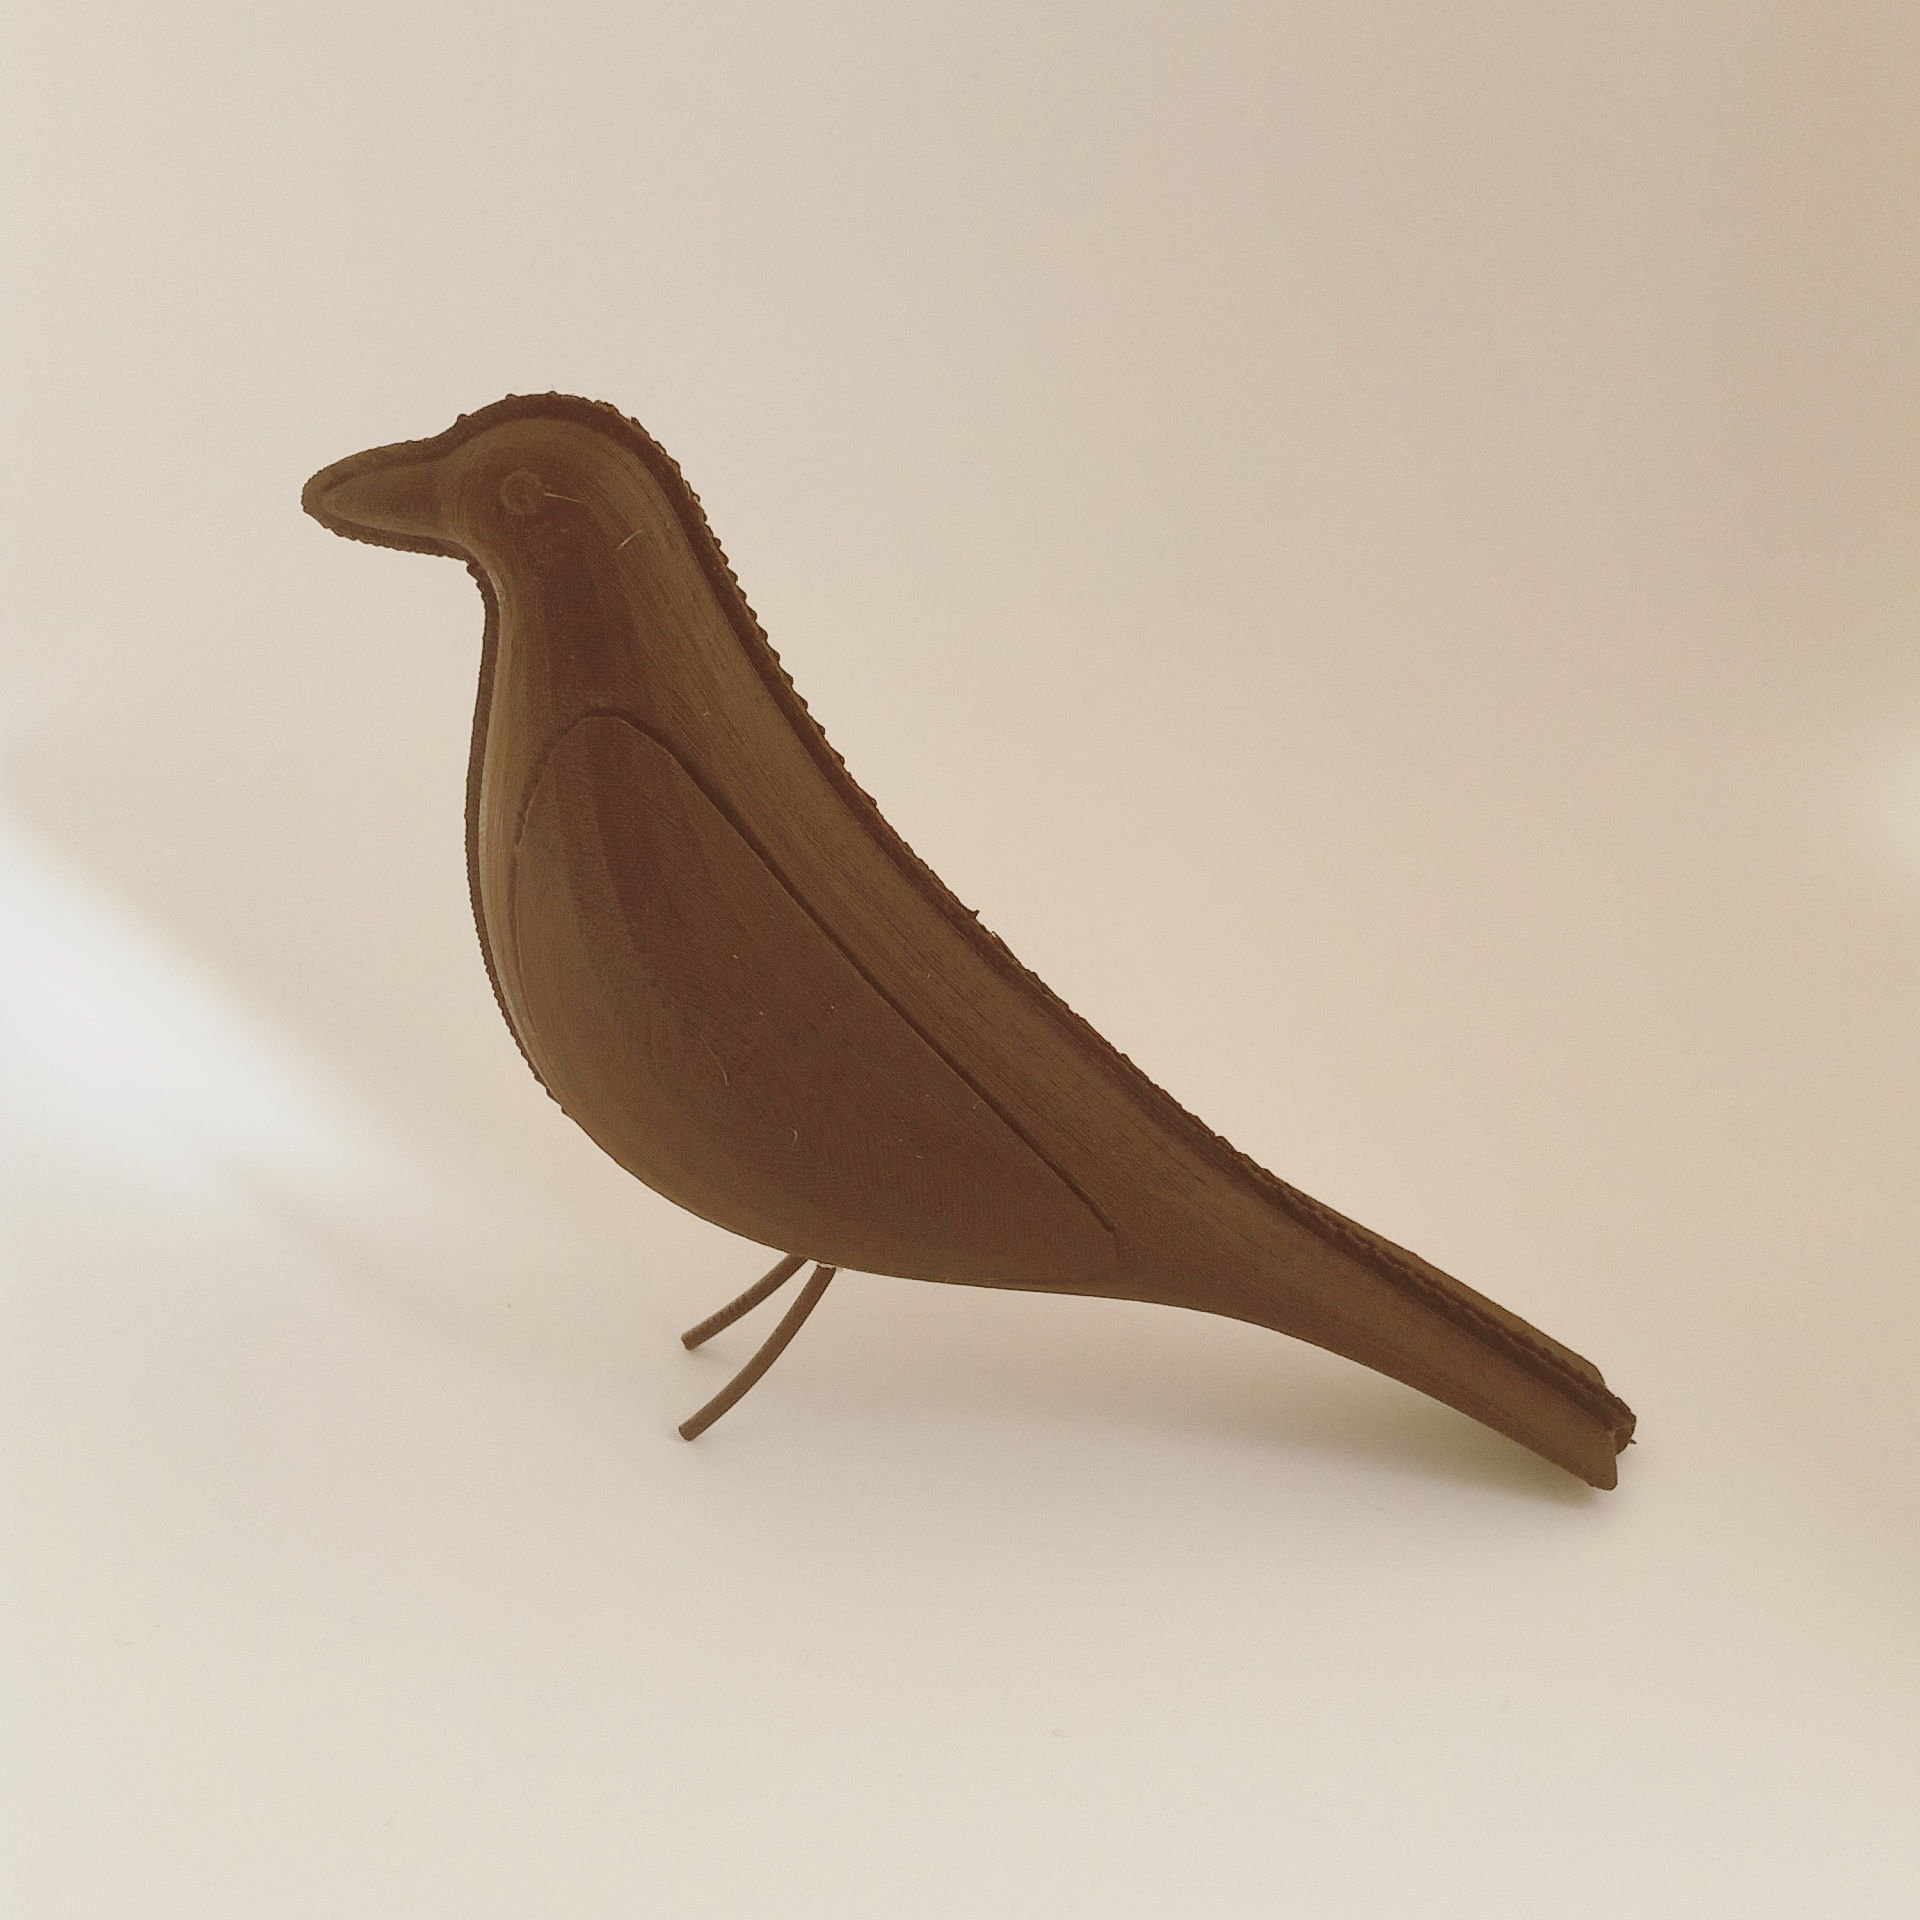 Eames House Bird Eames House Bird By Ibudmen Show And Tell Talk Manufacturing